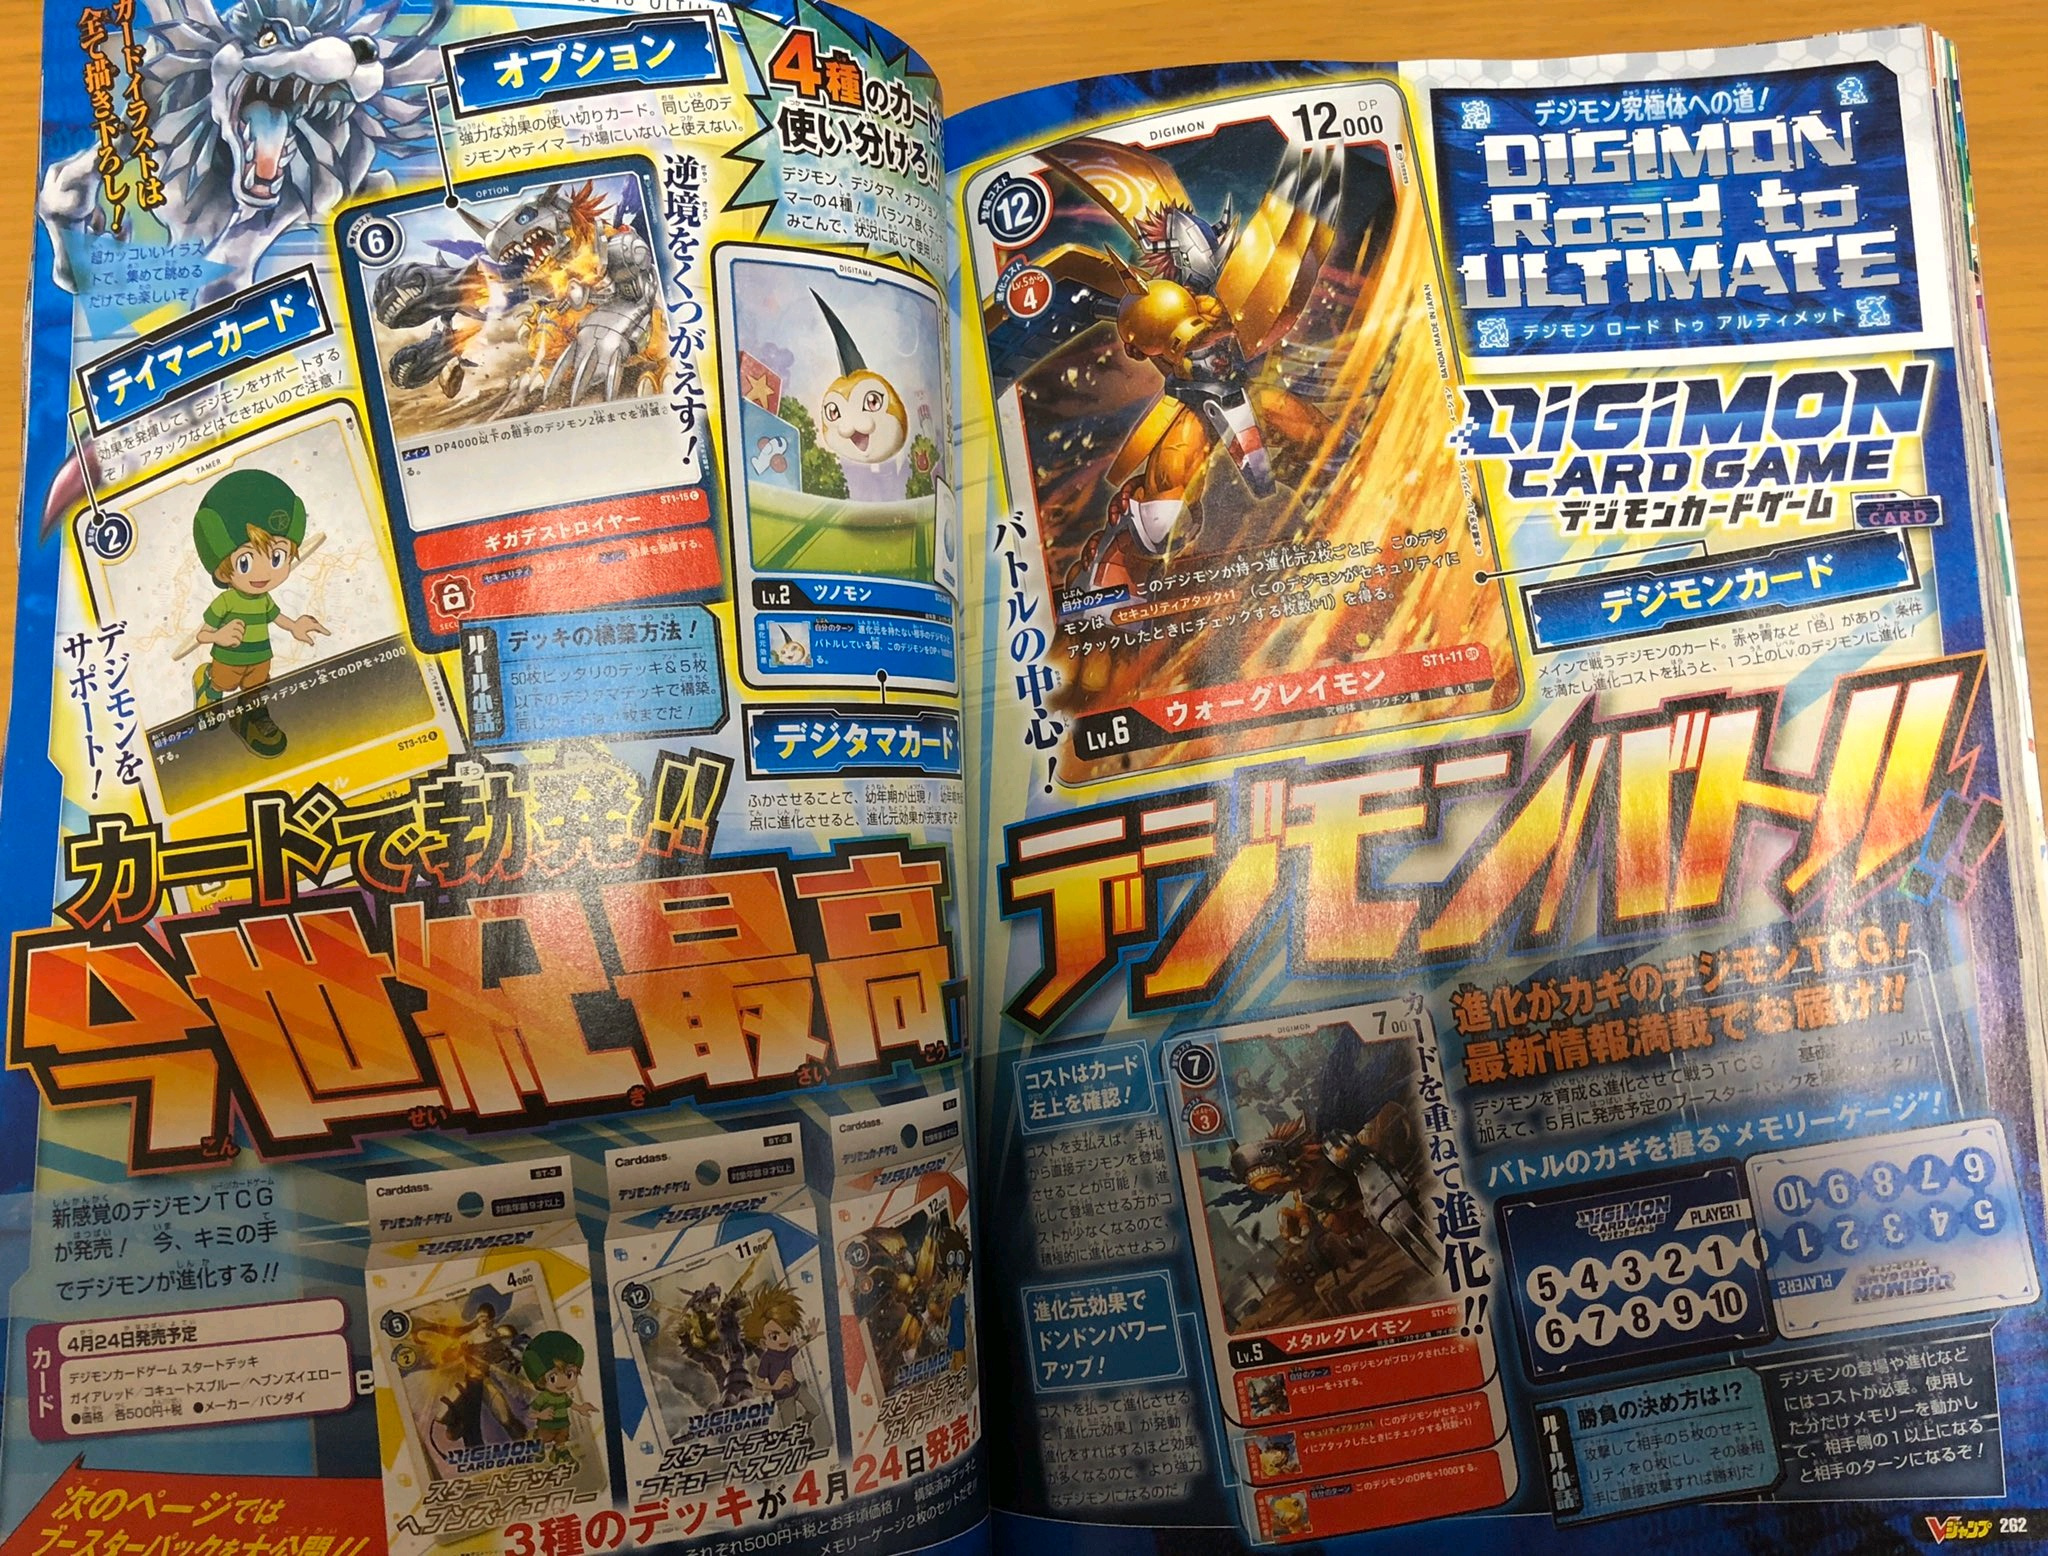 Digimon In June V Jump Card Game Adventure Rearise V Tamer Updated More Cards With The Will Digimon Forums I hope rearise lasts long. v jump card game adventure rearise